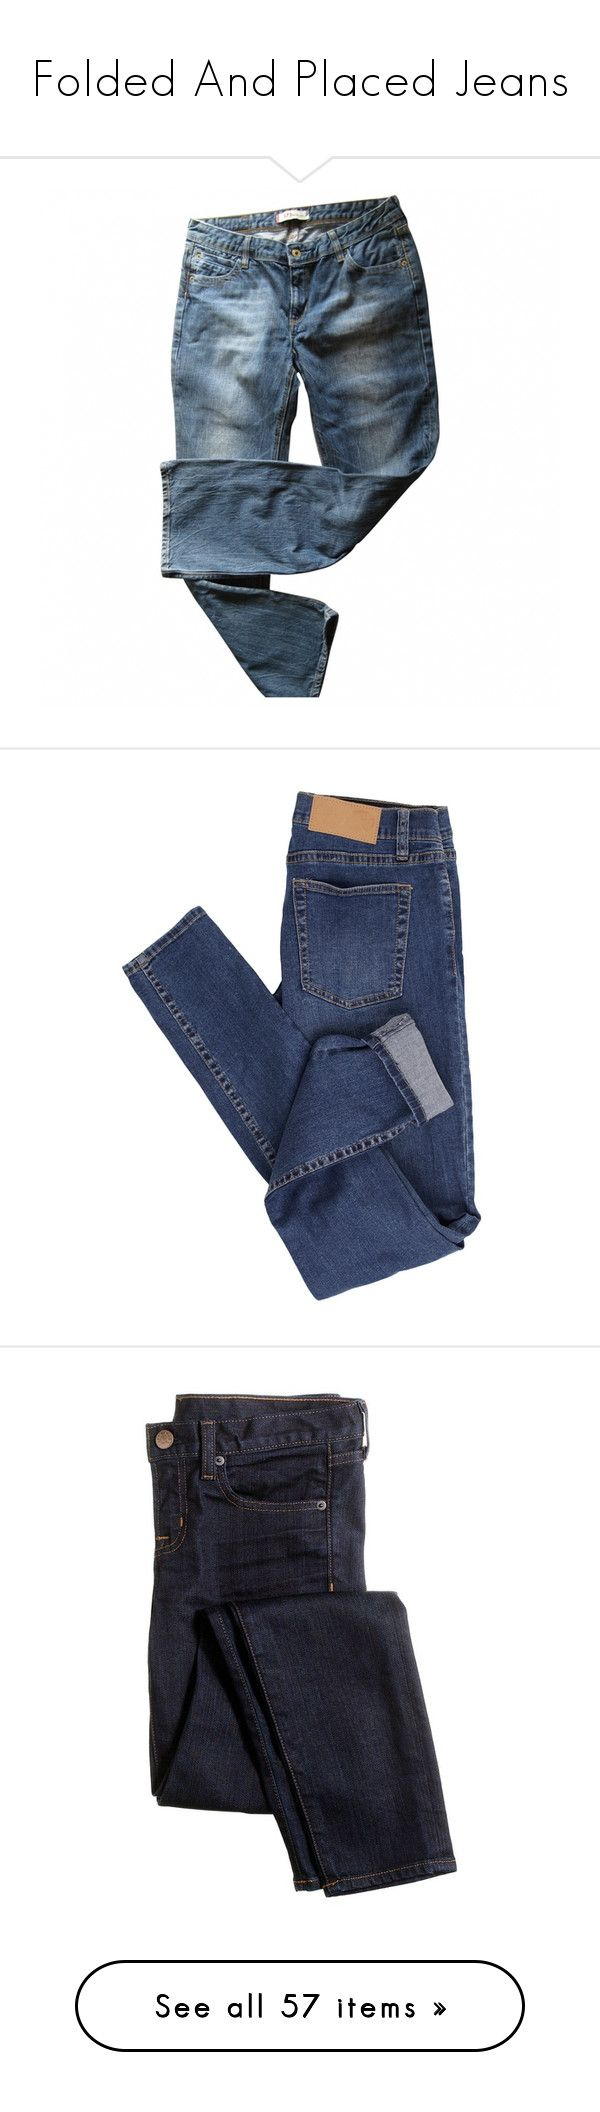 """Folded And Placed Jeans"" by meghanfstjohn ❤ liked on Polyvore featuring jeans, pants, bottoms, blue jeans, levi jeans, levi's, trousers, blue pants, slim pants and slim fit trousers"